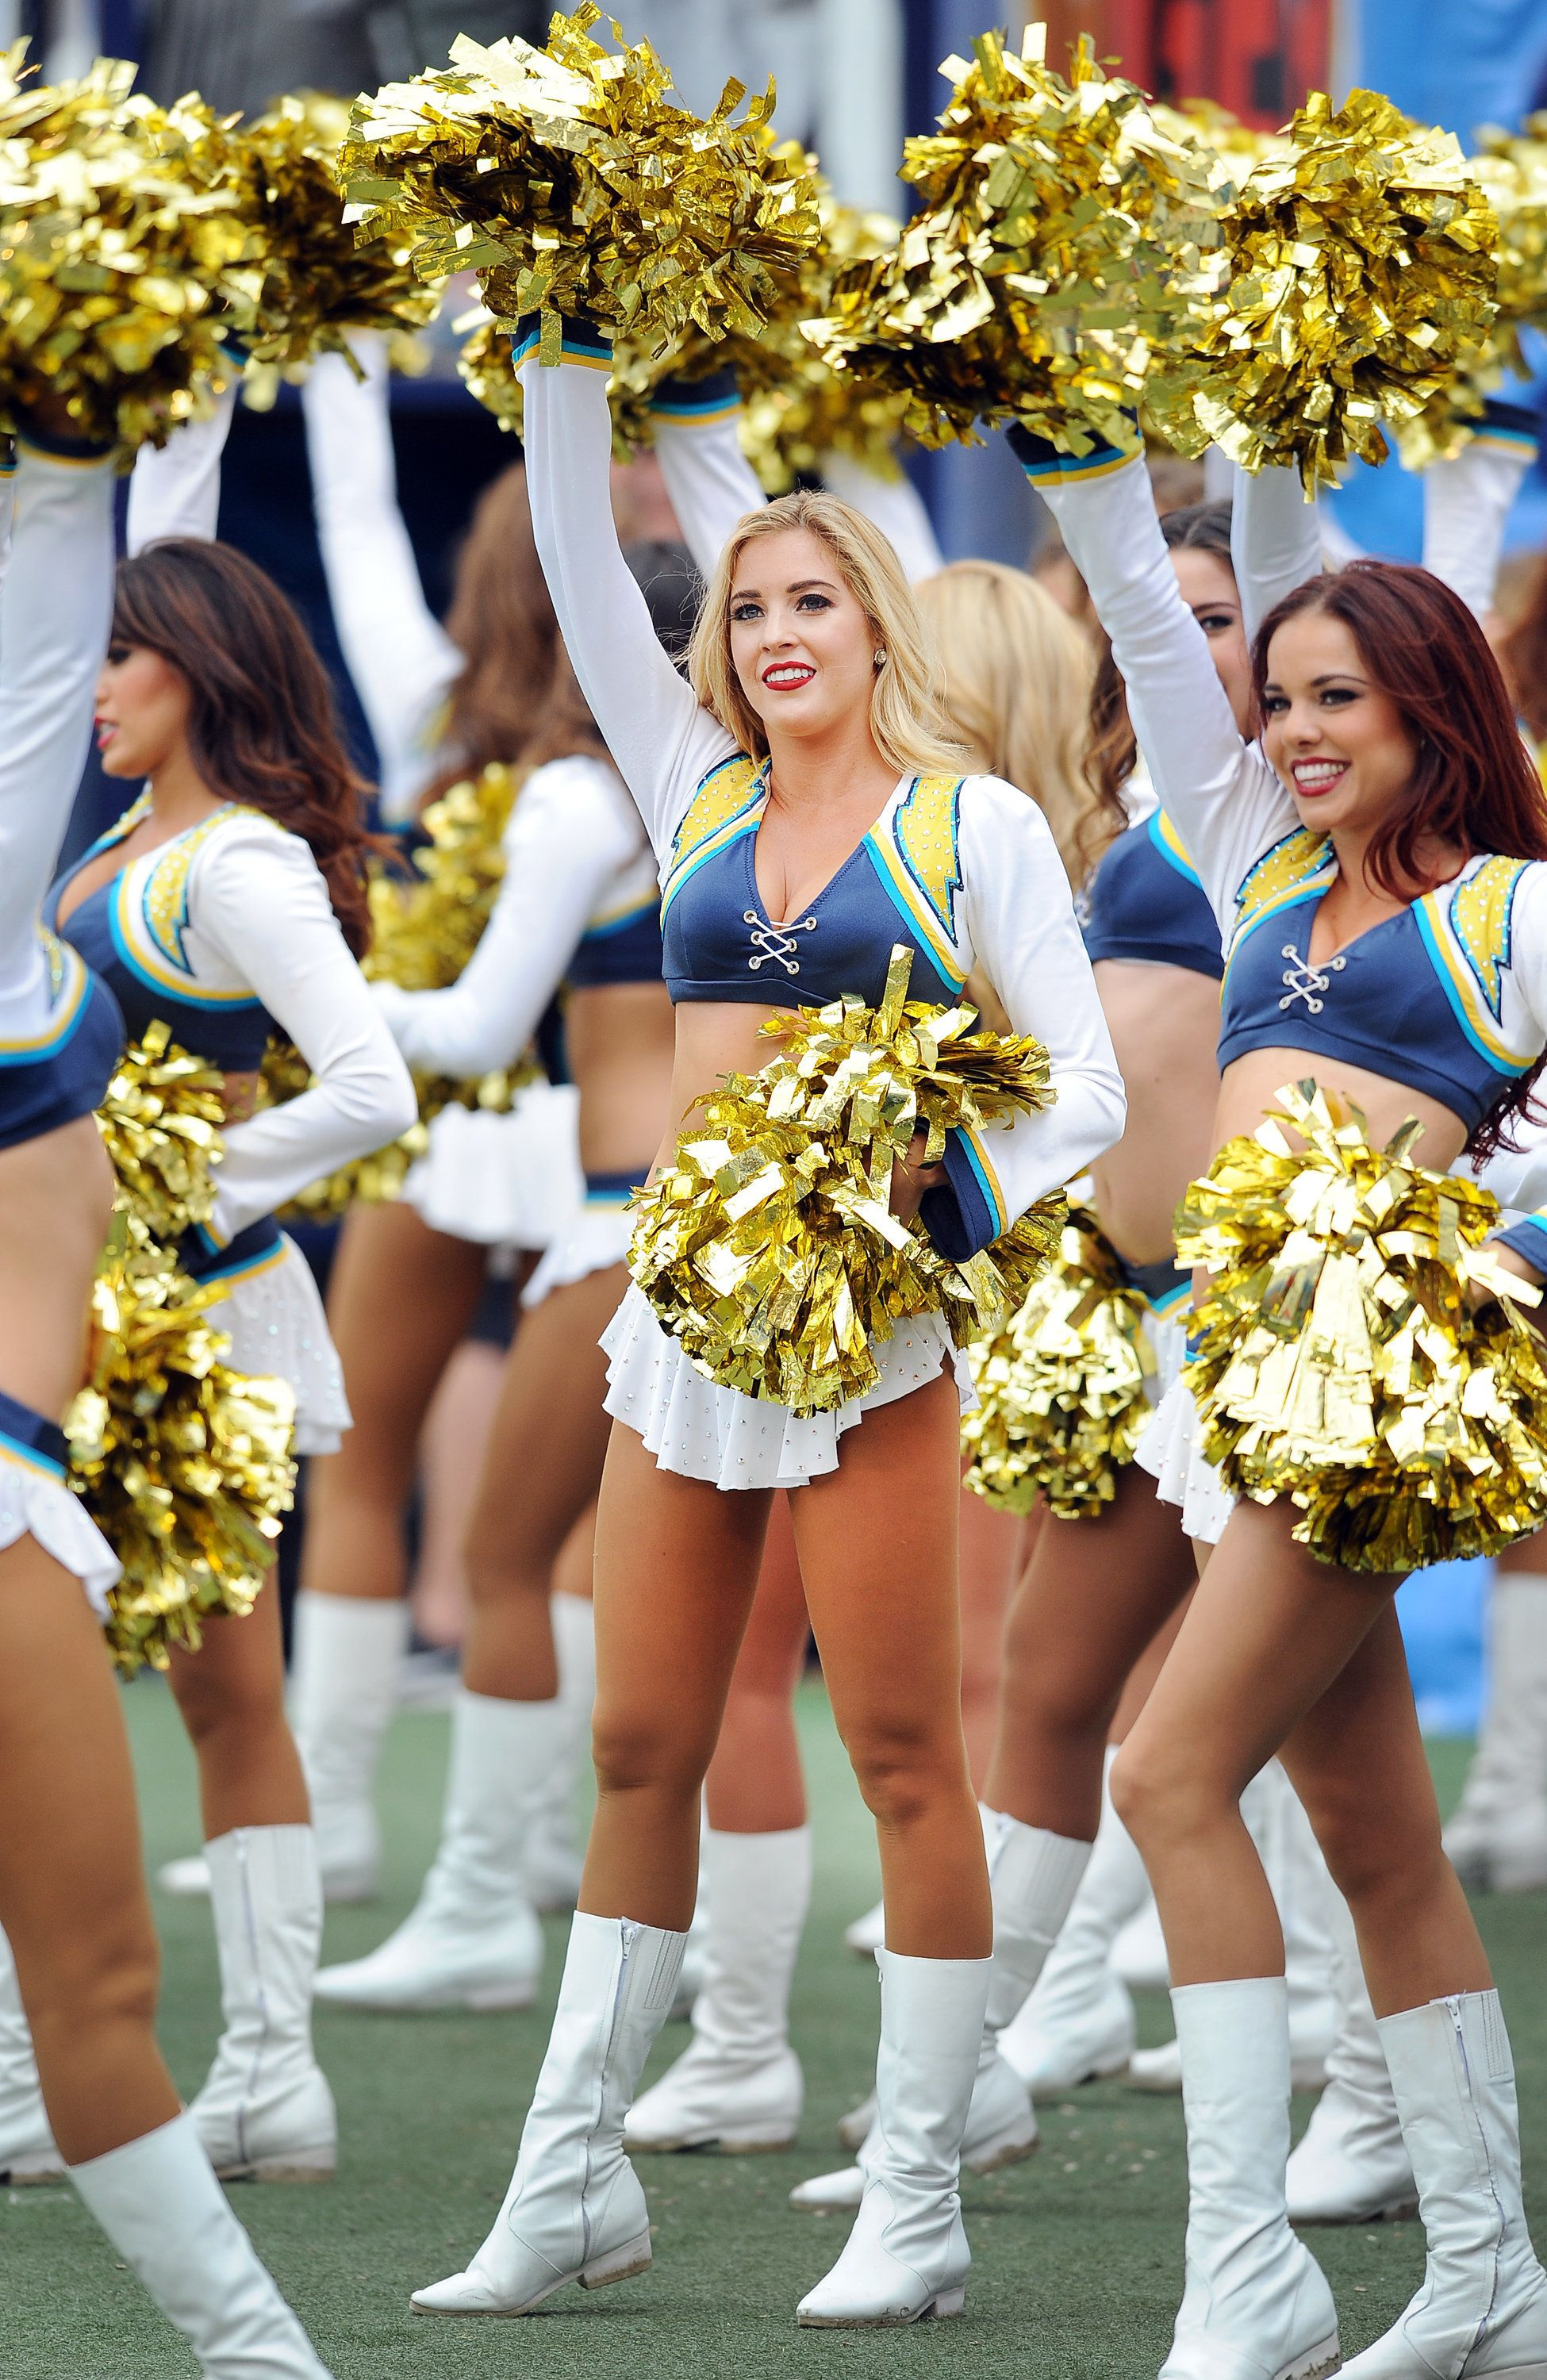 04 Oct. 2015: San Diego Chargers cheerleaders on the field during a game against the Cleveland Browns played at Qualcomm Stadium in San Diego, CA. (Photo By John Cordes/Icon Sportswire) (Photo by John Cordes/Icon Sportswire/Corbis via Getty Images)